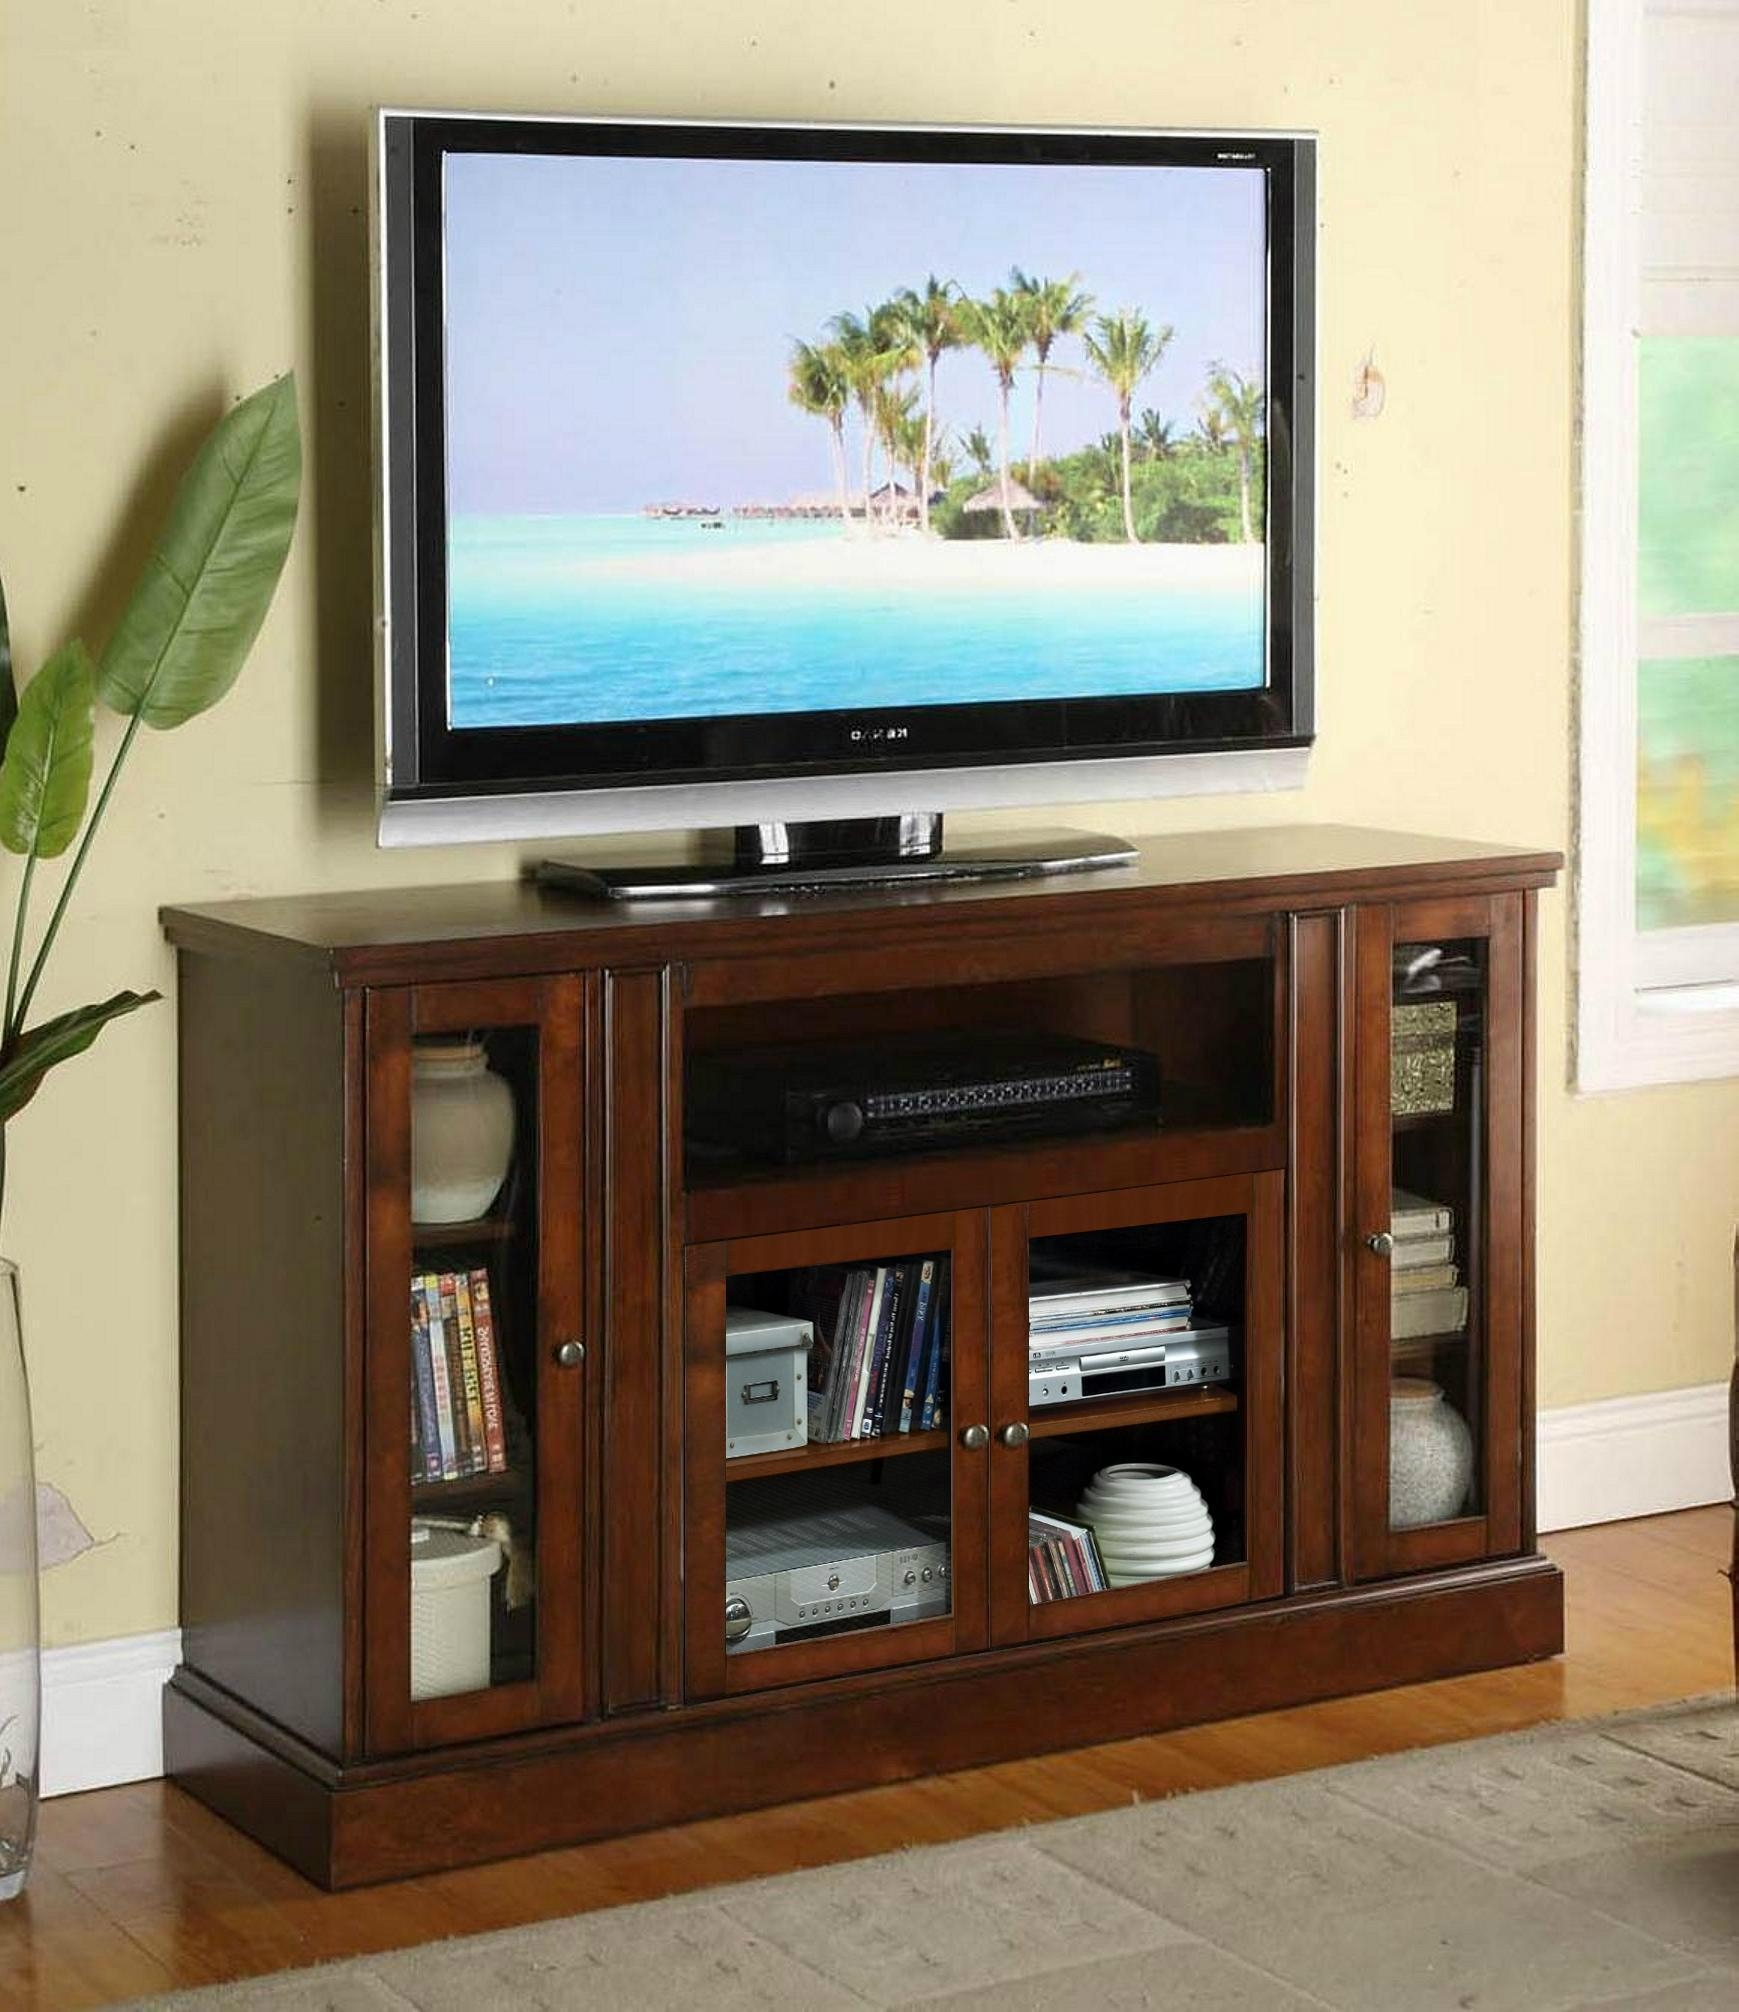 54 Inch Charcoal Grey 4 Glass Doors Rustic Tv Console